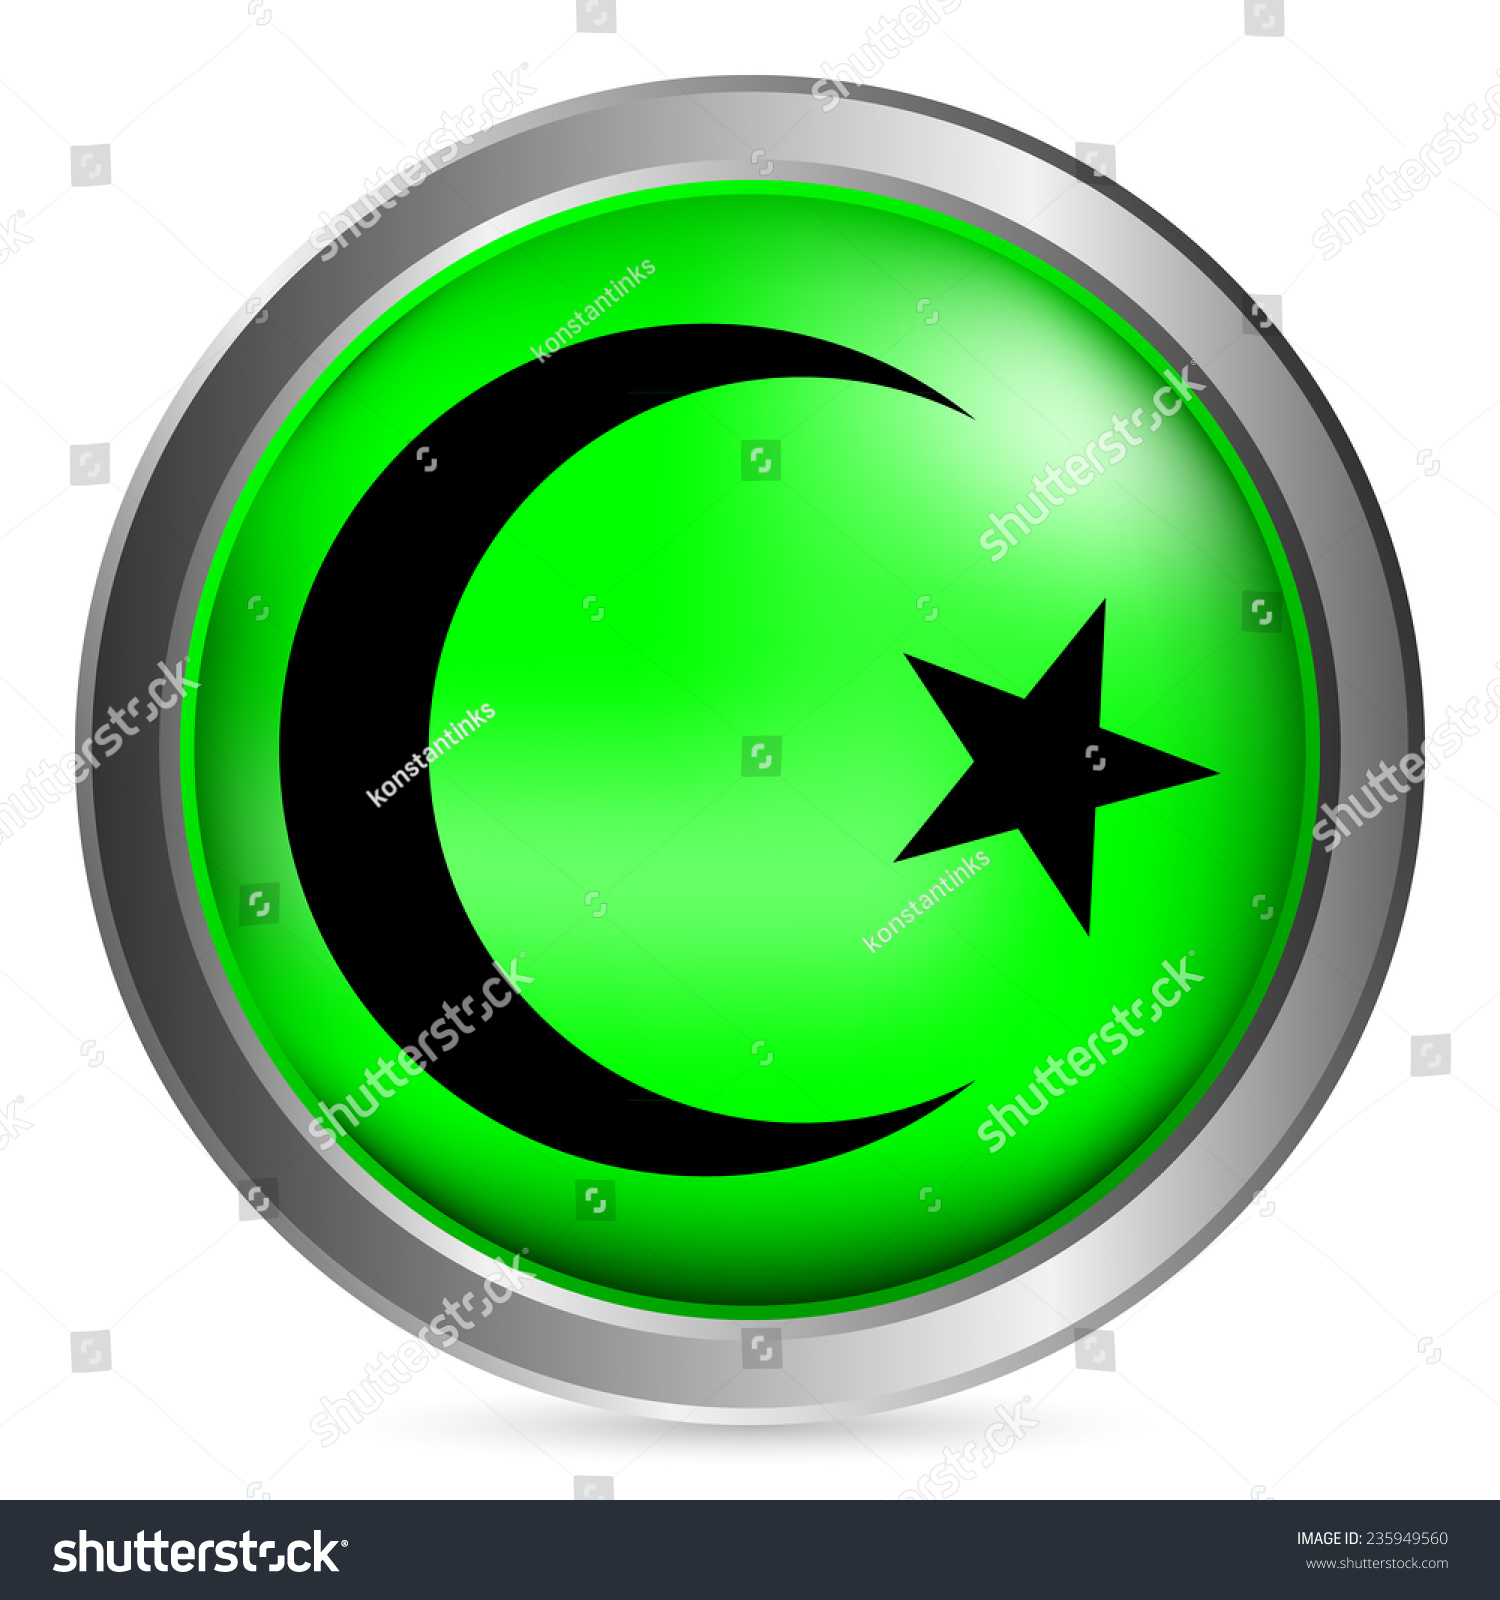 Star crescent button on white background stock vector 235949560 star and crescent button on white background vector illustration symbol of islam buycottarizona Gallery